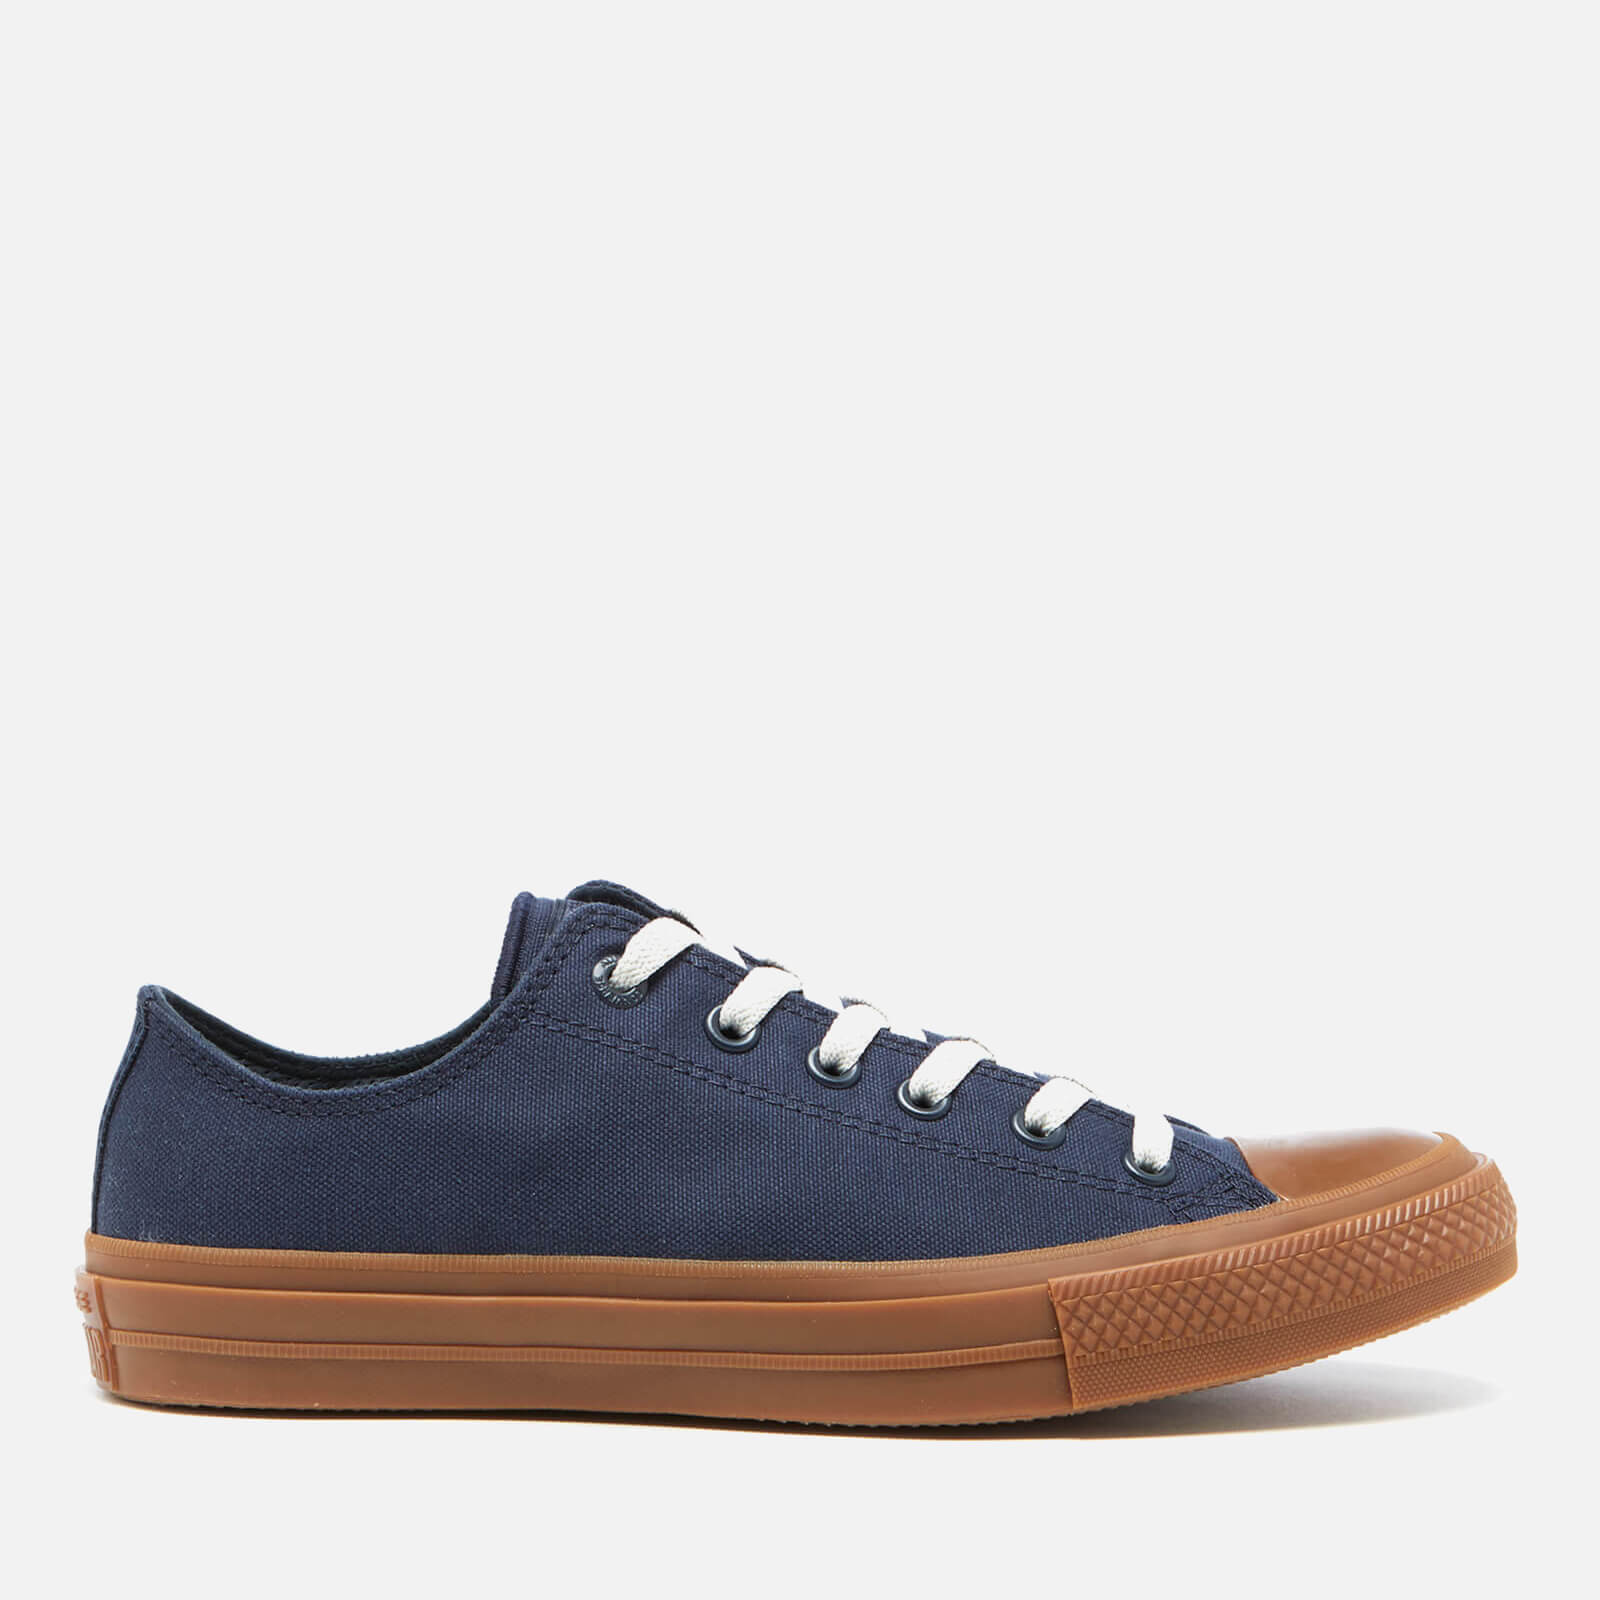 6134246ac3ef Converse Men s Chuck Taylor All Star II Ox Trainers - Obsidian Gum - Free  UK Delivery over £50